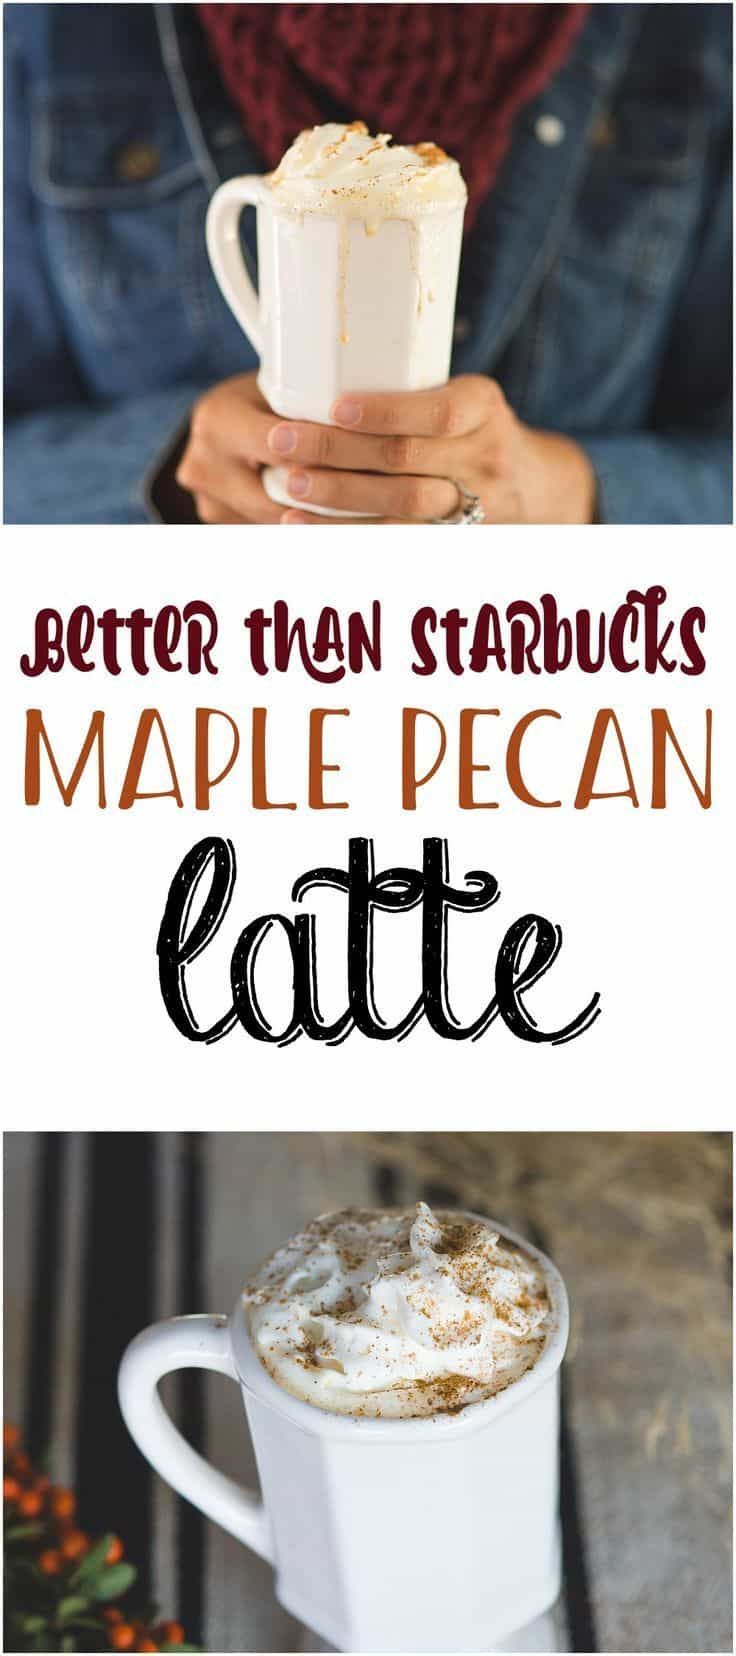 Maple pecan latte 15 Best Coffee Recipes for Fall that Taste Delicious